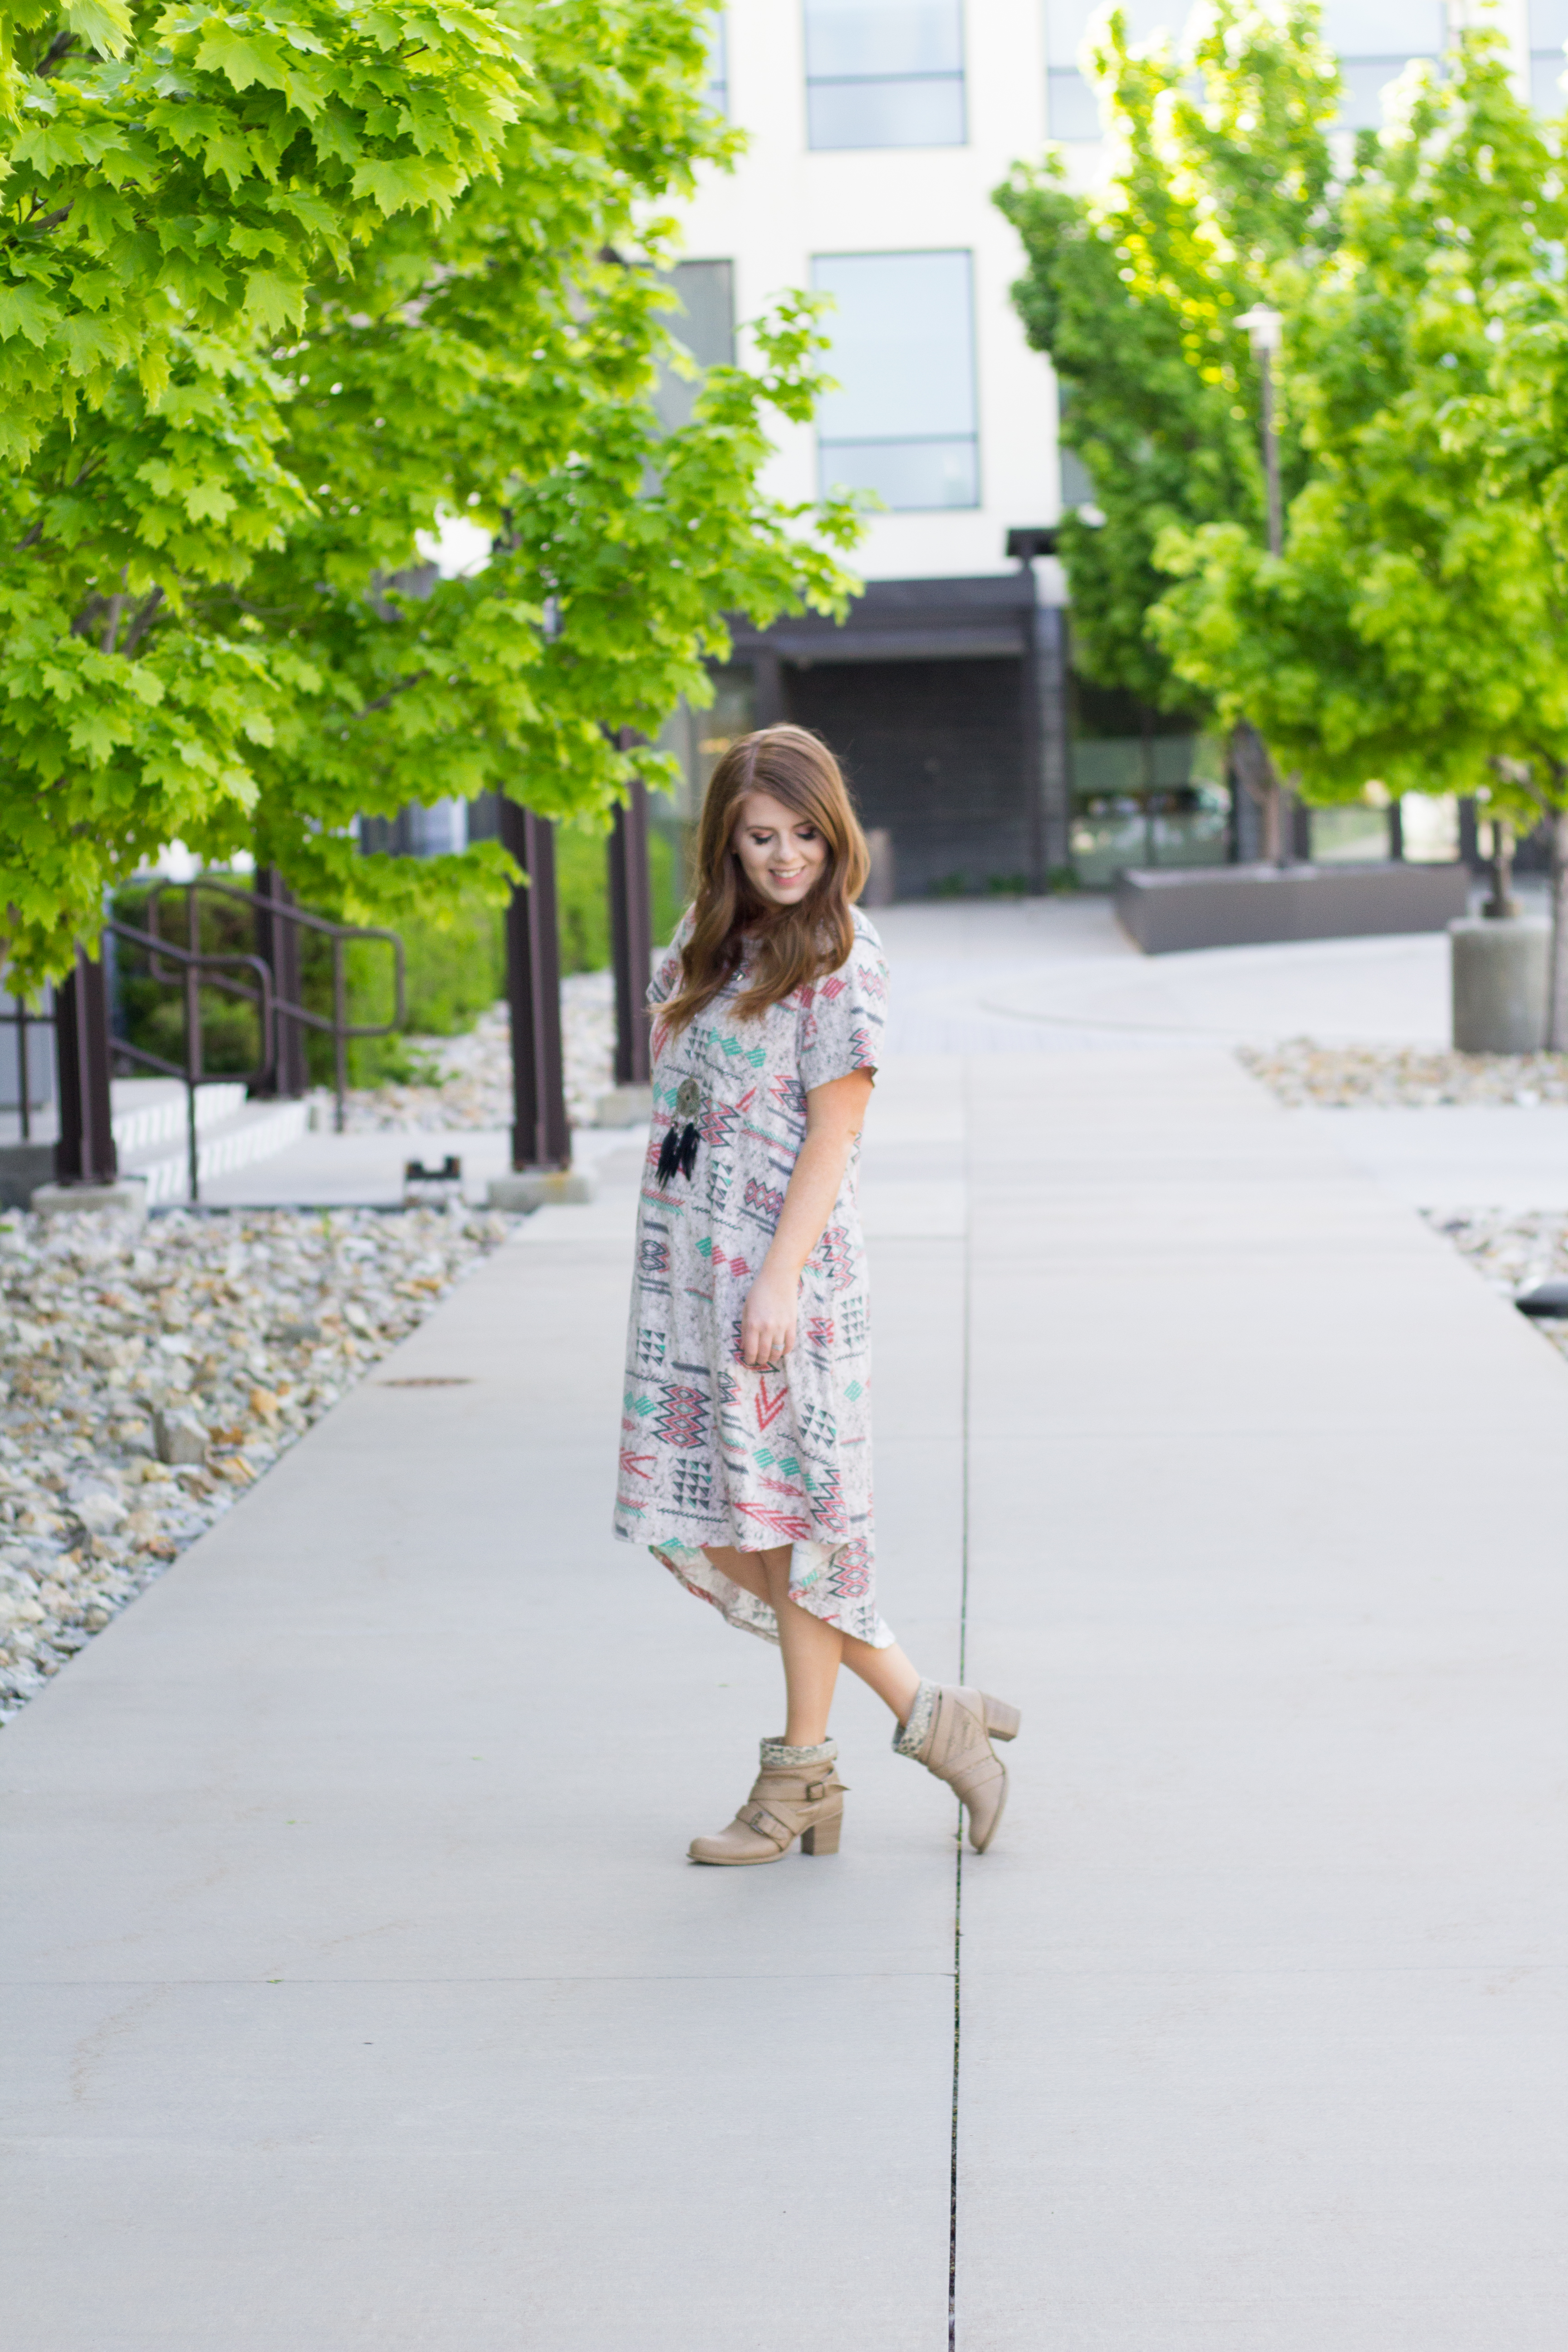 The Perfect Summer Dress: The Lularoe Carly graphic